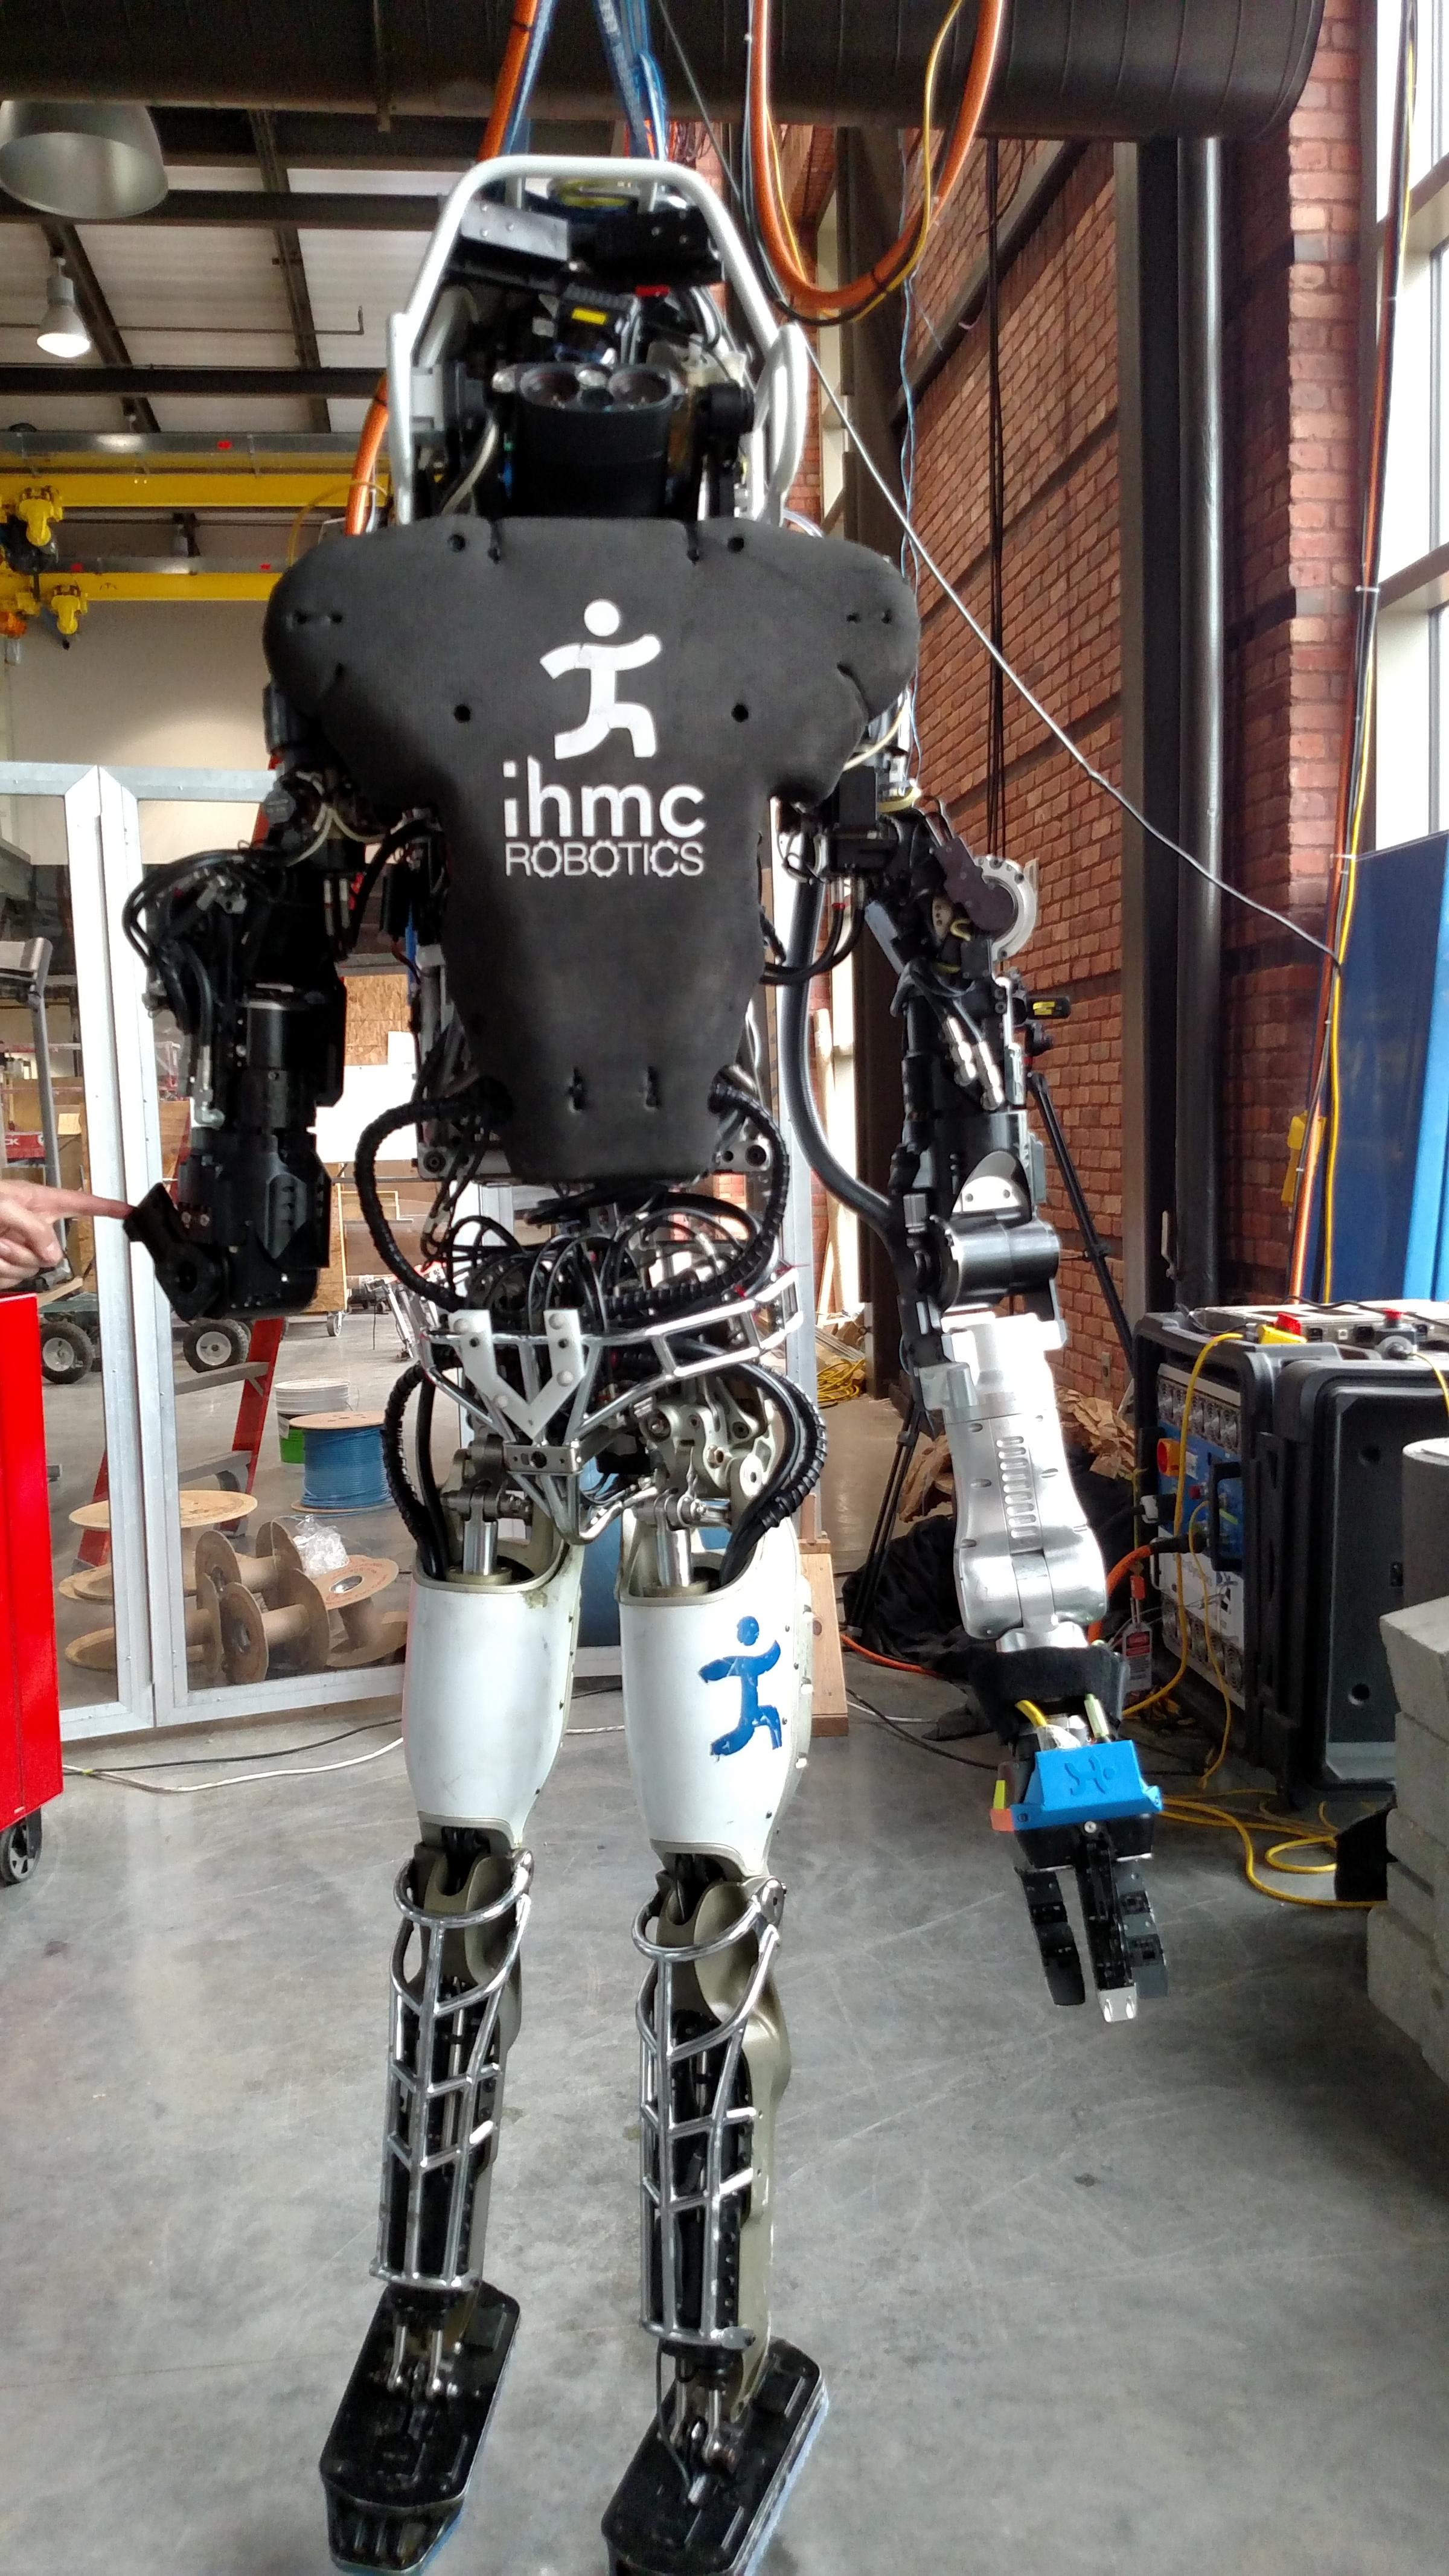 Ihmc Research On Display At Robotics Week Open House Wuwf